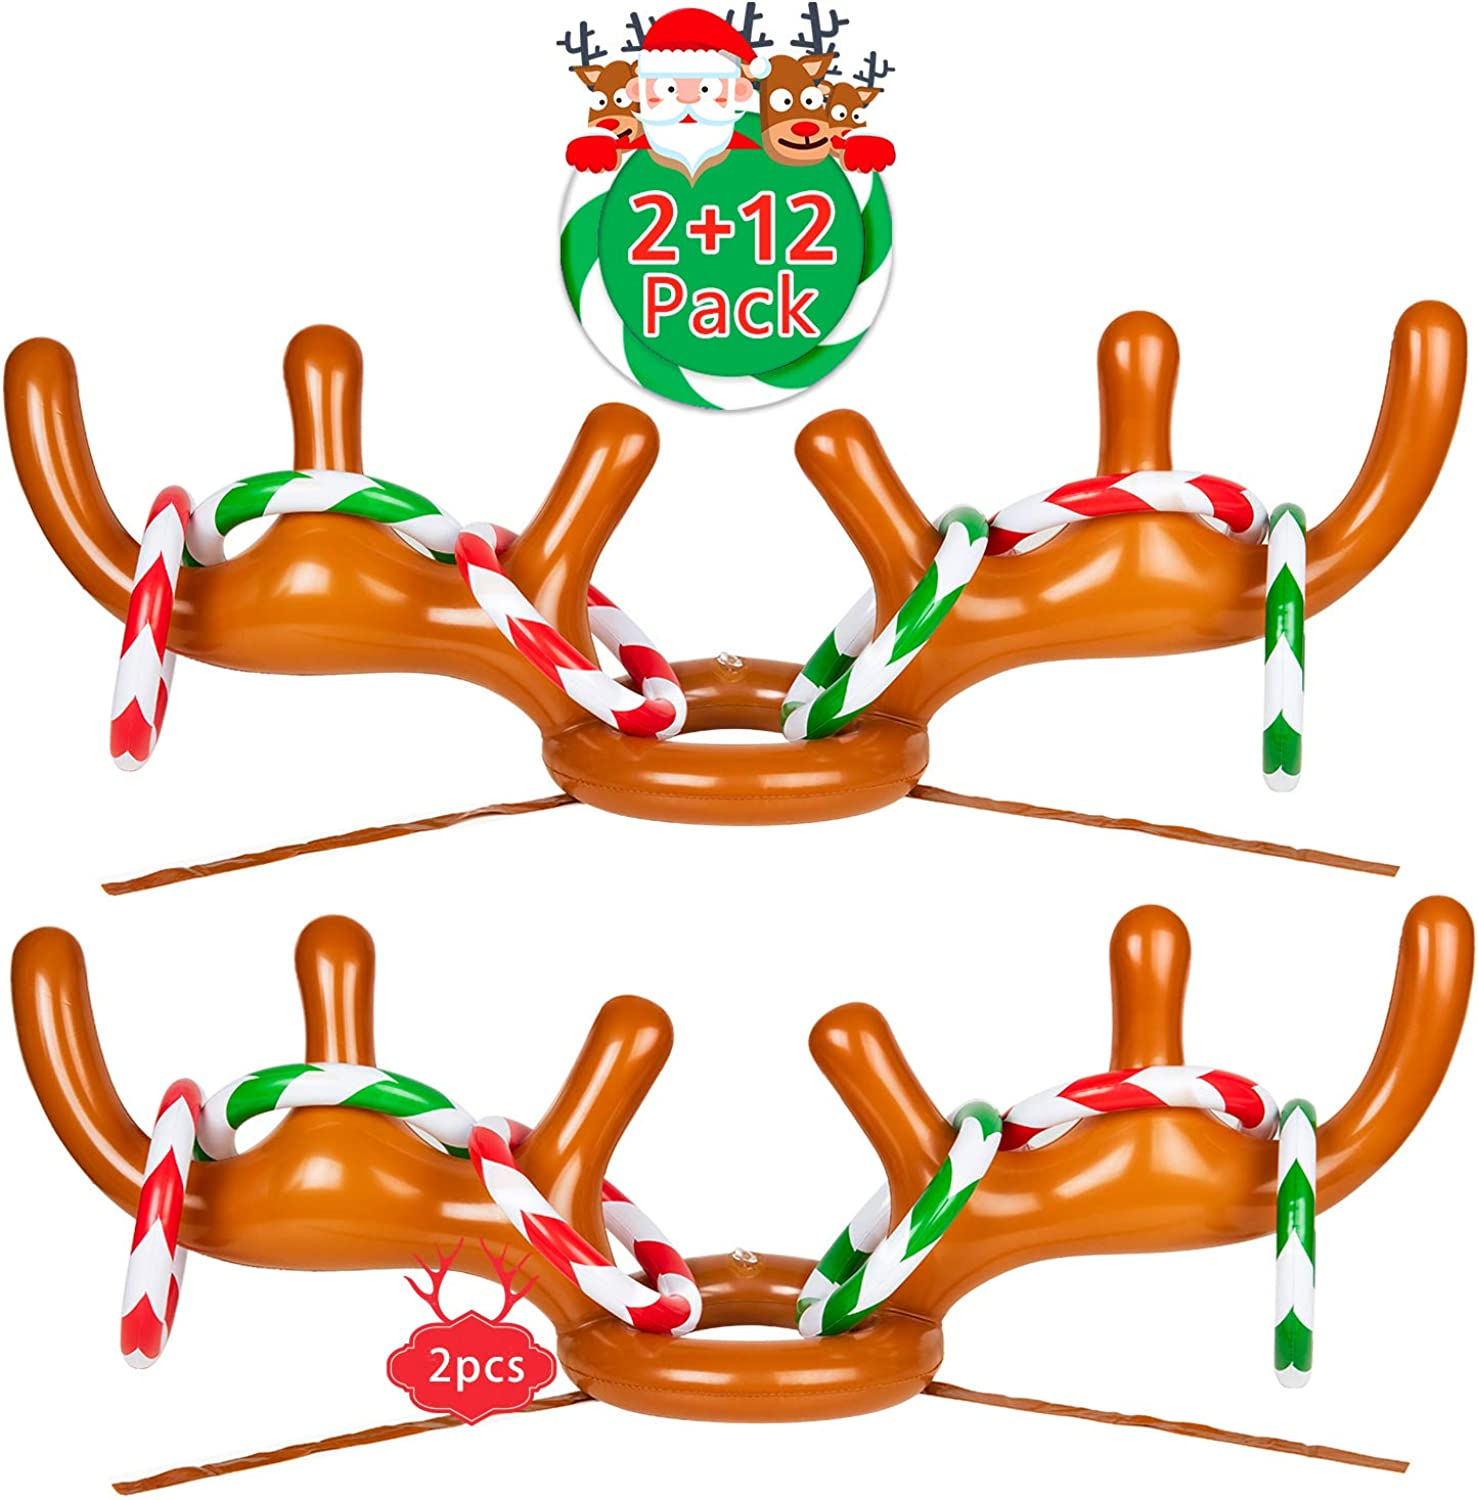 Joyjoz 2 Packs Christmas Inflatable Reindeer Antler Ring Toss Game for Christmas Holiday Party, Xmas Party, 2 to 4 Players (2 Antlers & 12 Rings)